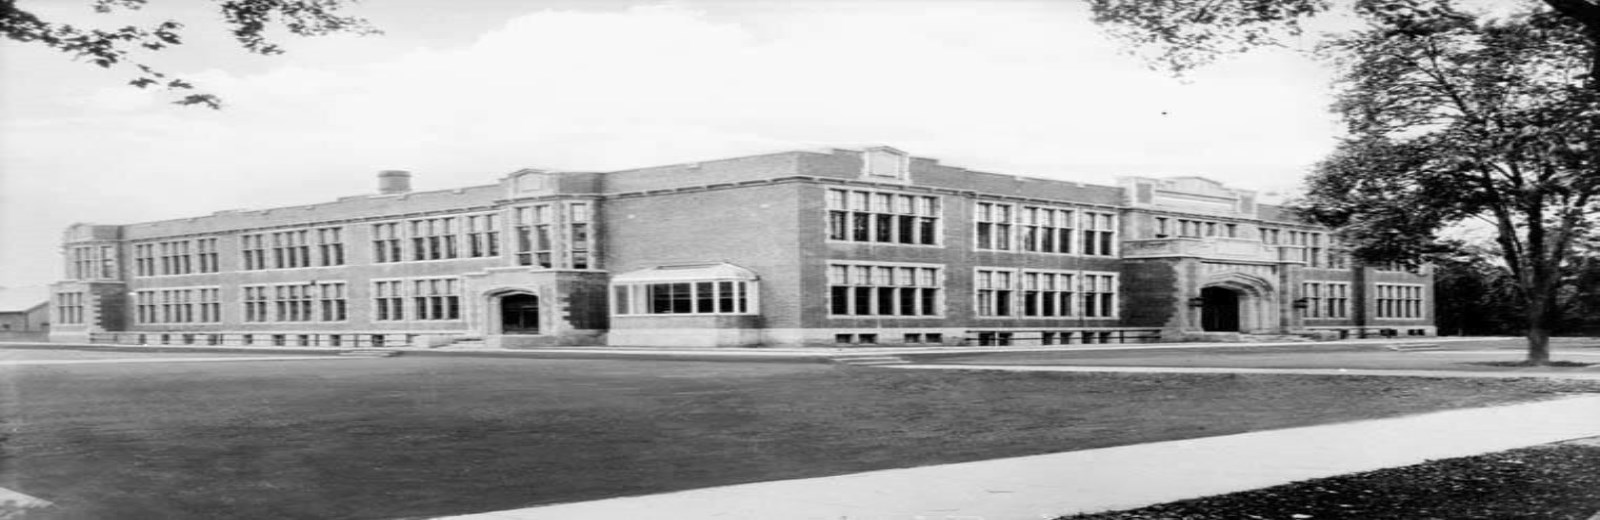 Old Central School Photo